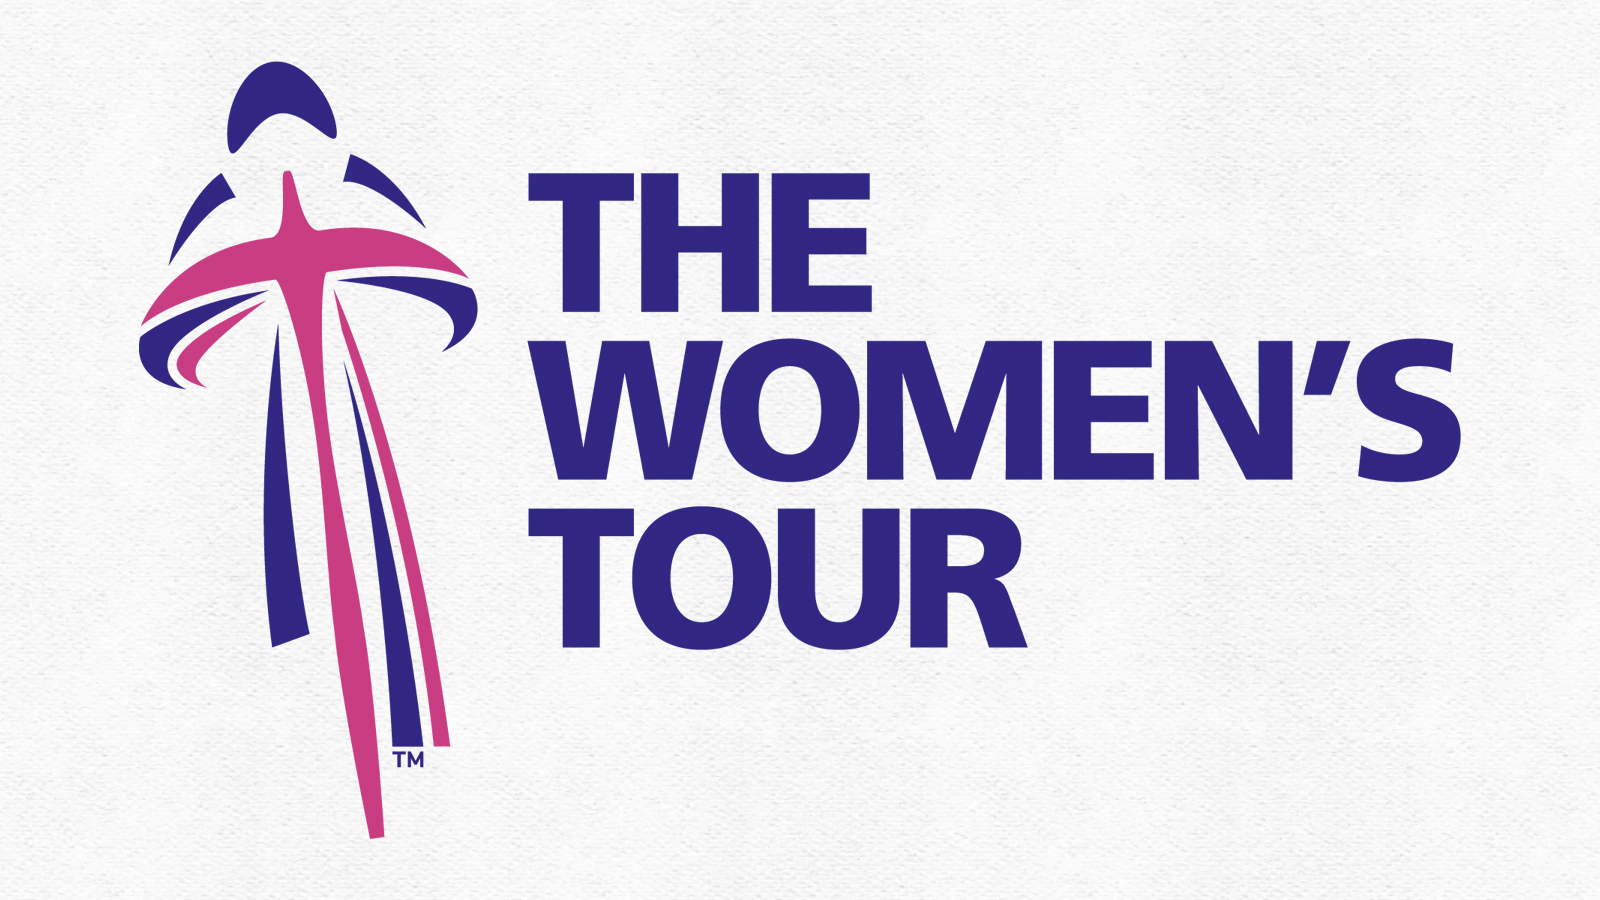 Women's Tour logo